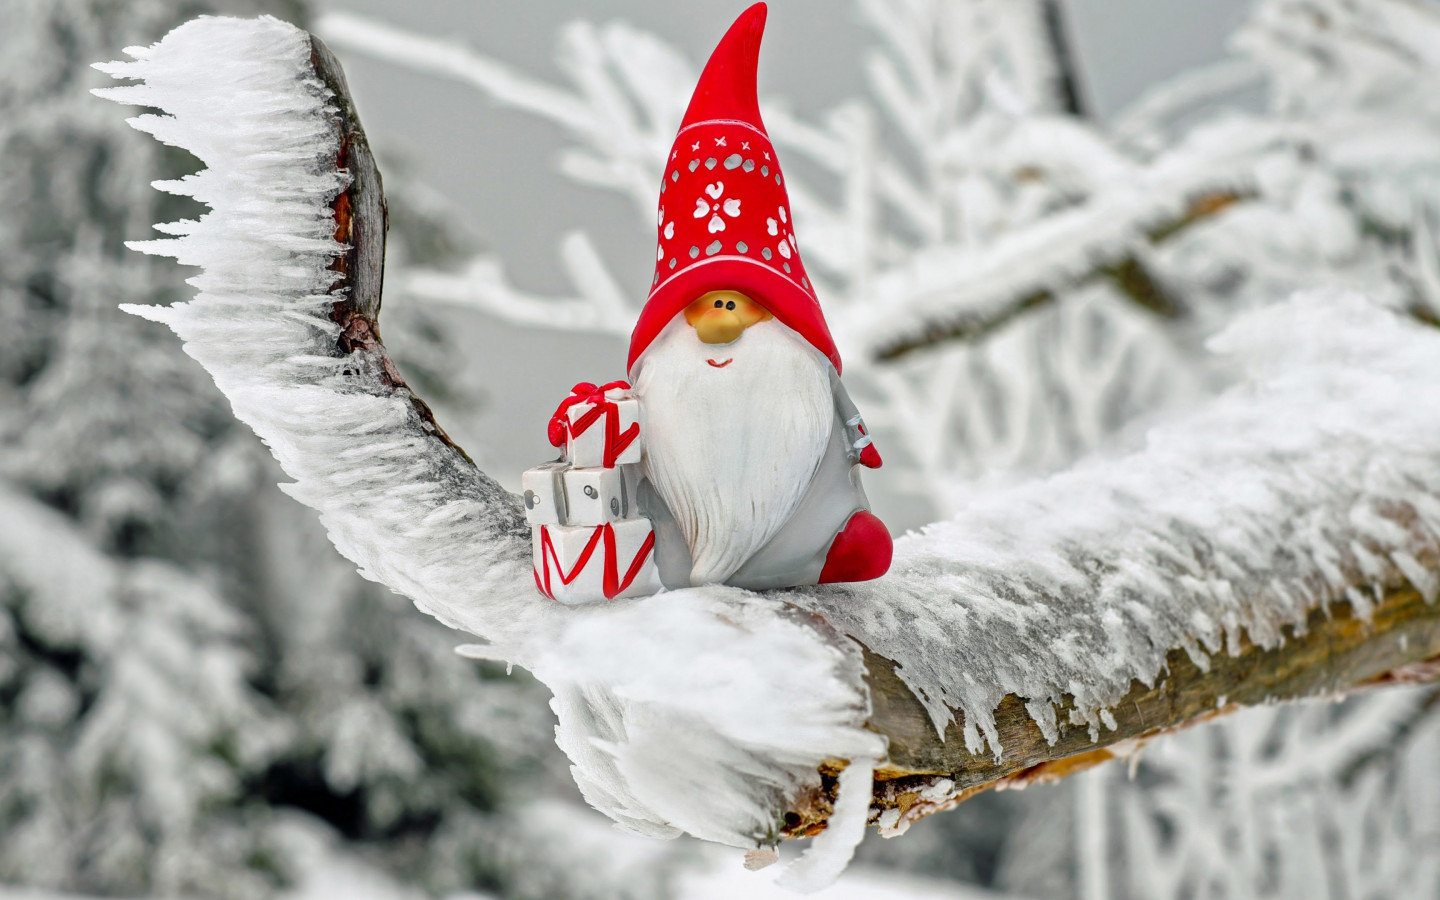 Santa Claus figurine wallpaper 1440x900